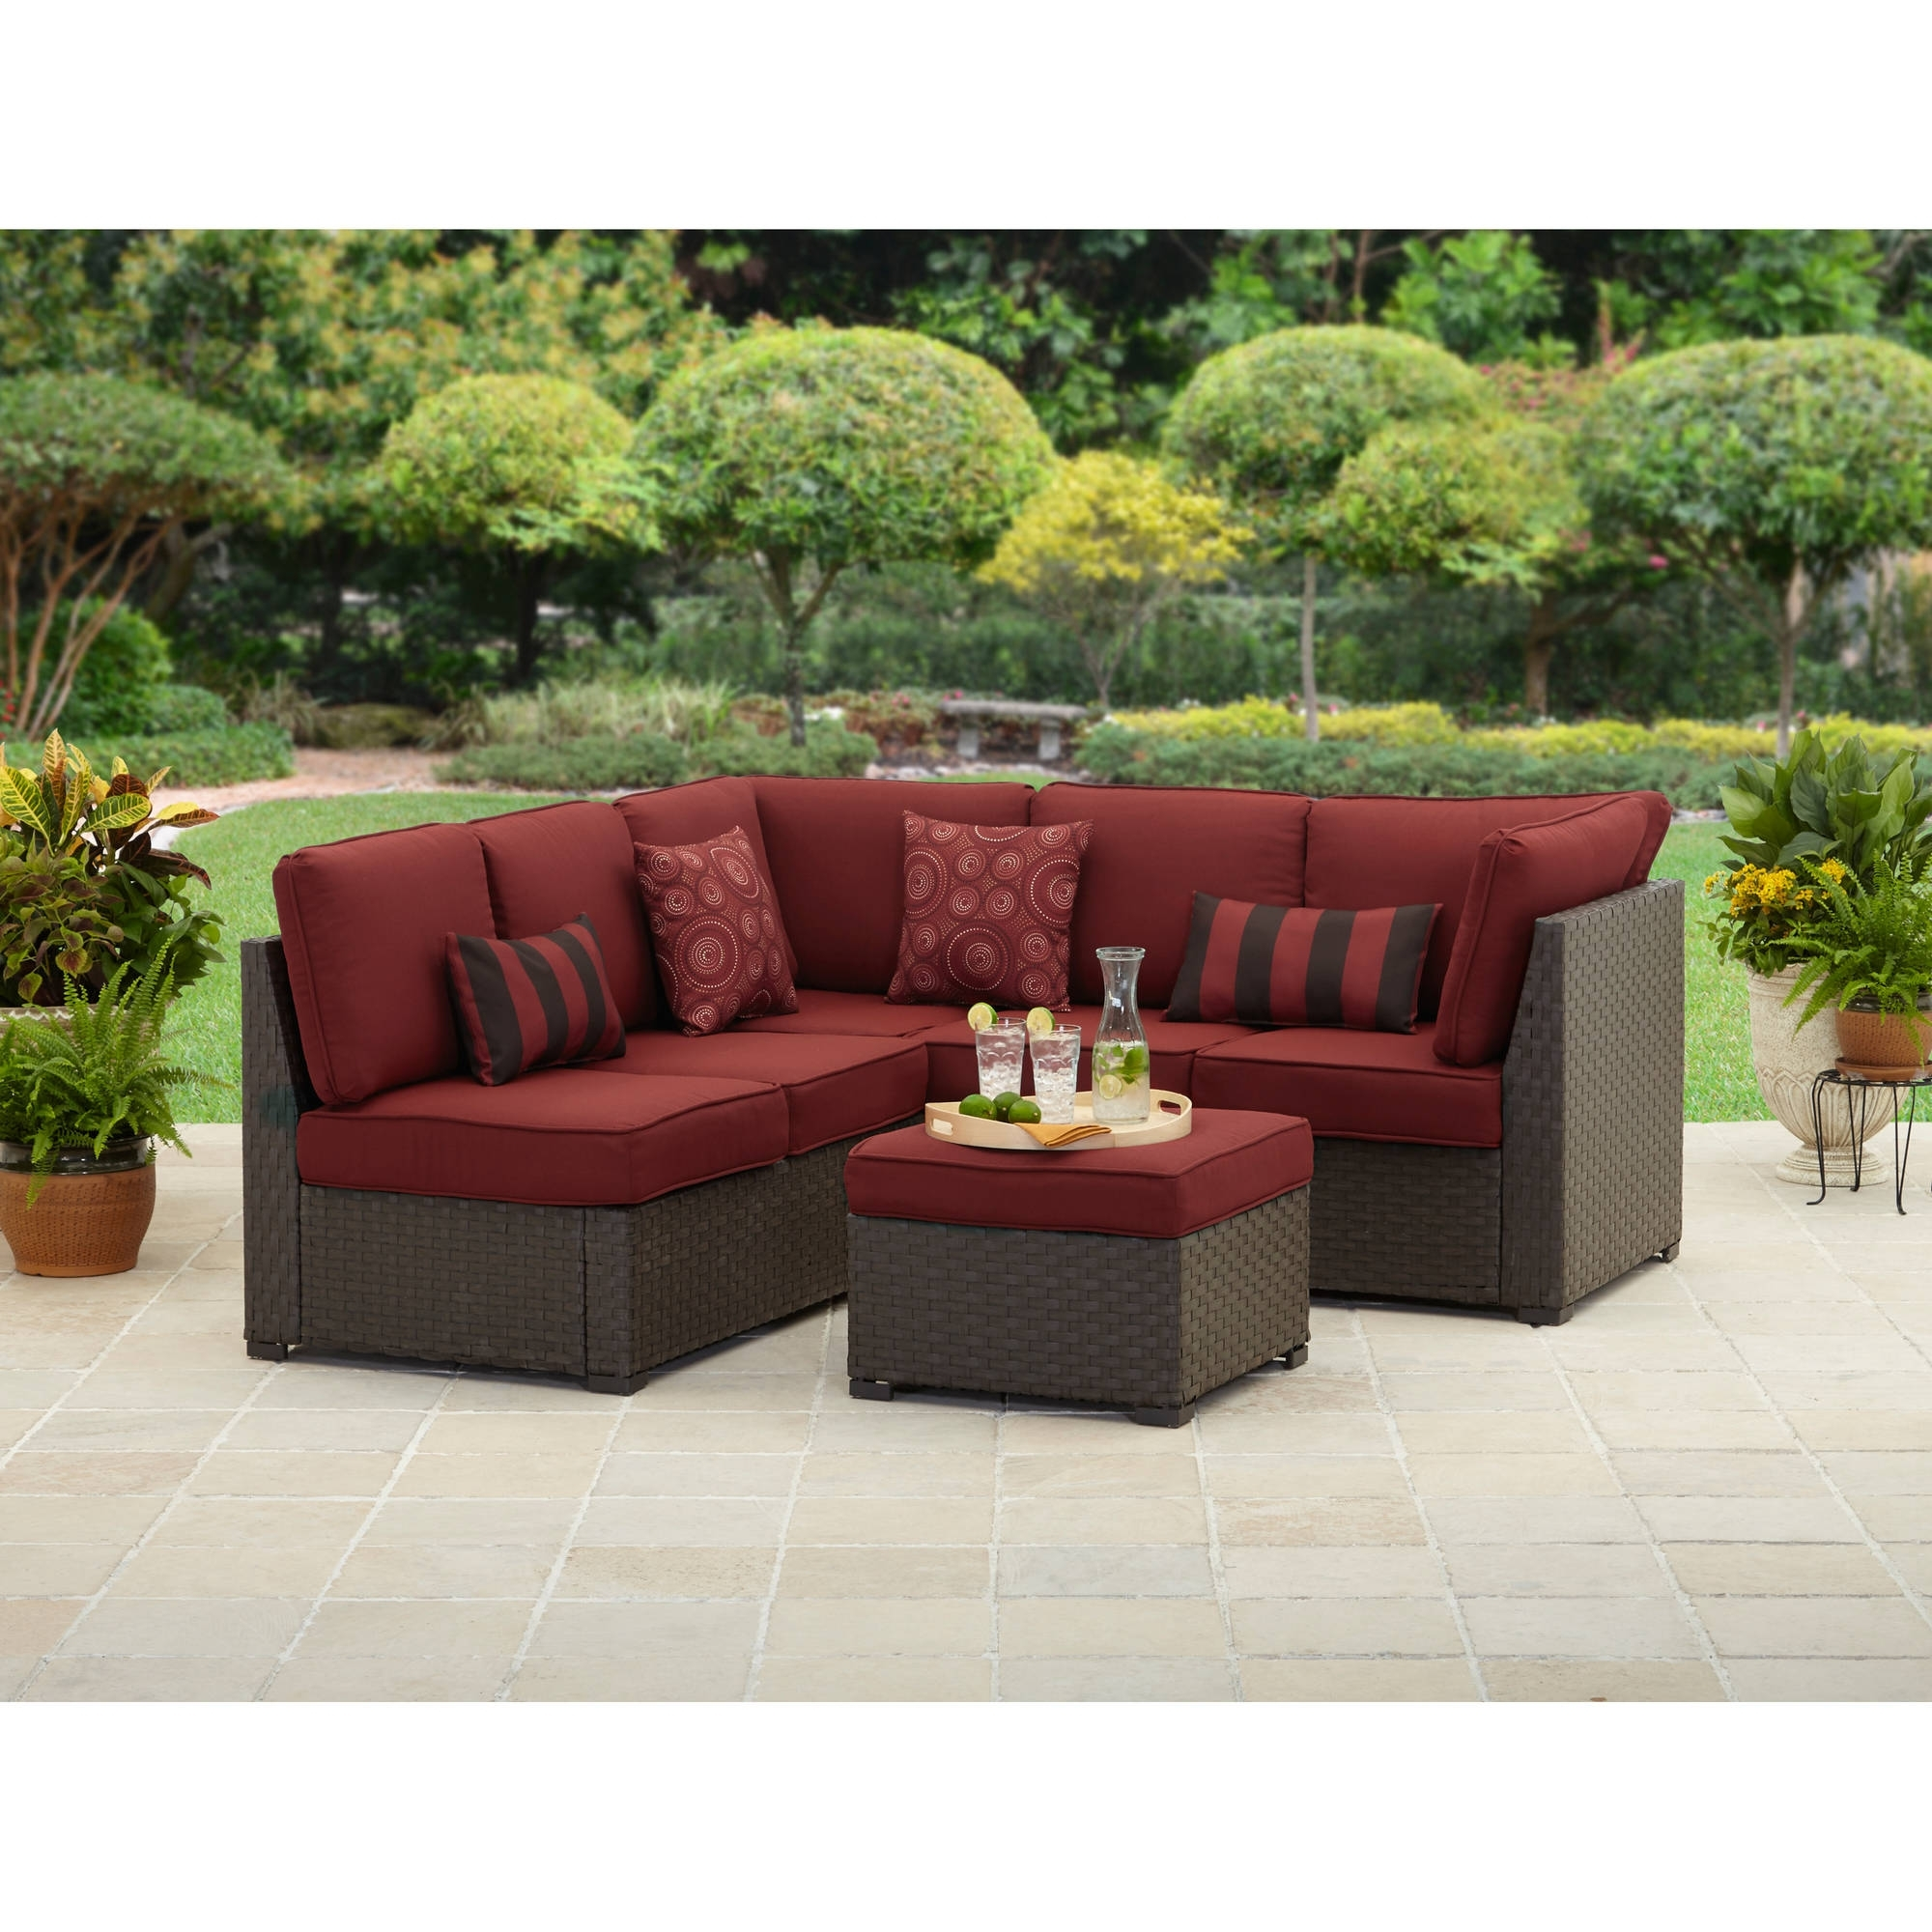 Better Homes And Gardens Rush Valley 3 Piece Outdoor Sectional Within Widely Used Patio Conversation Sets At Walmart (View 4 of 20)